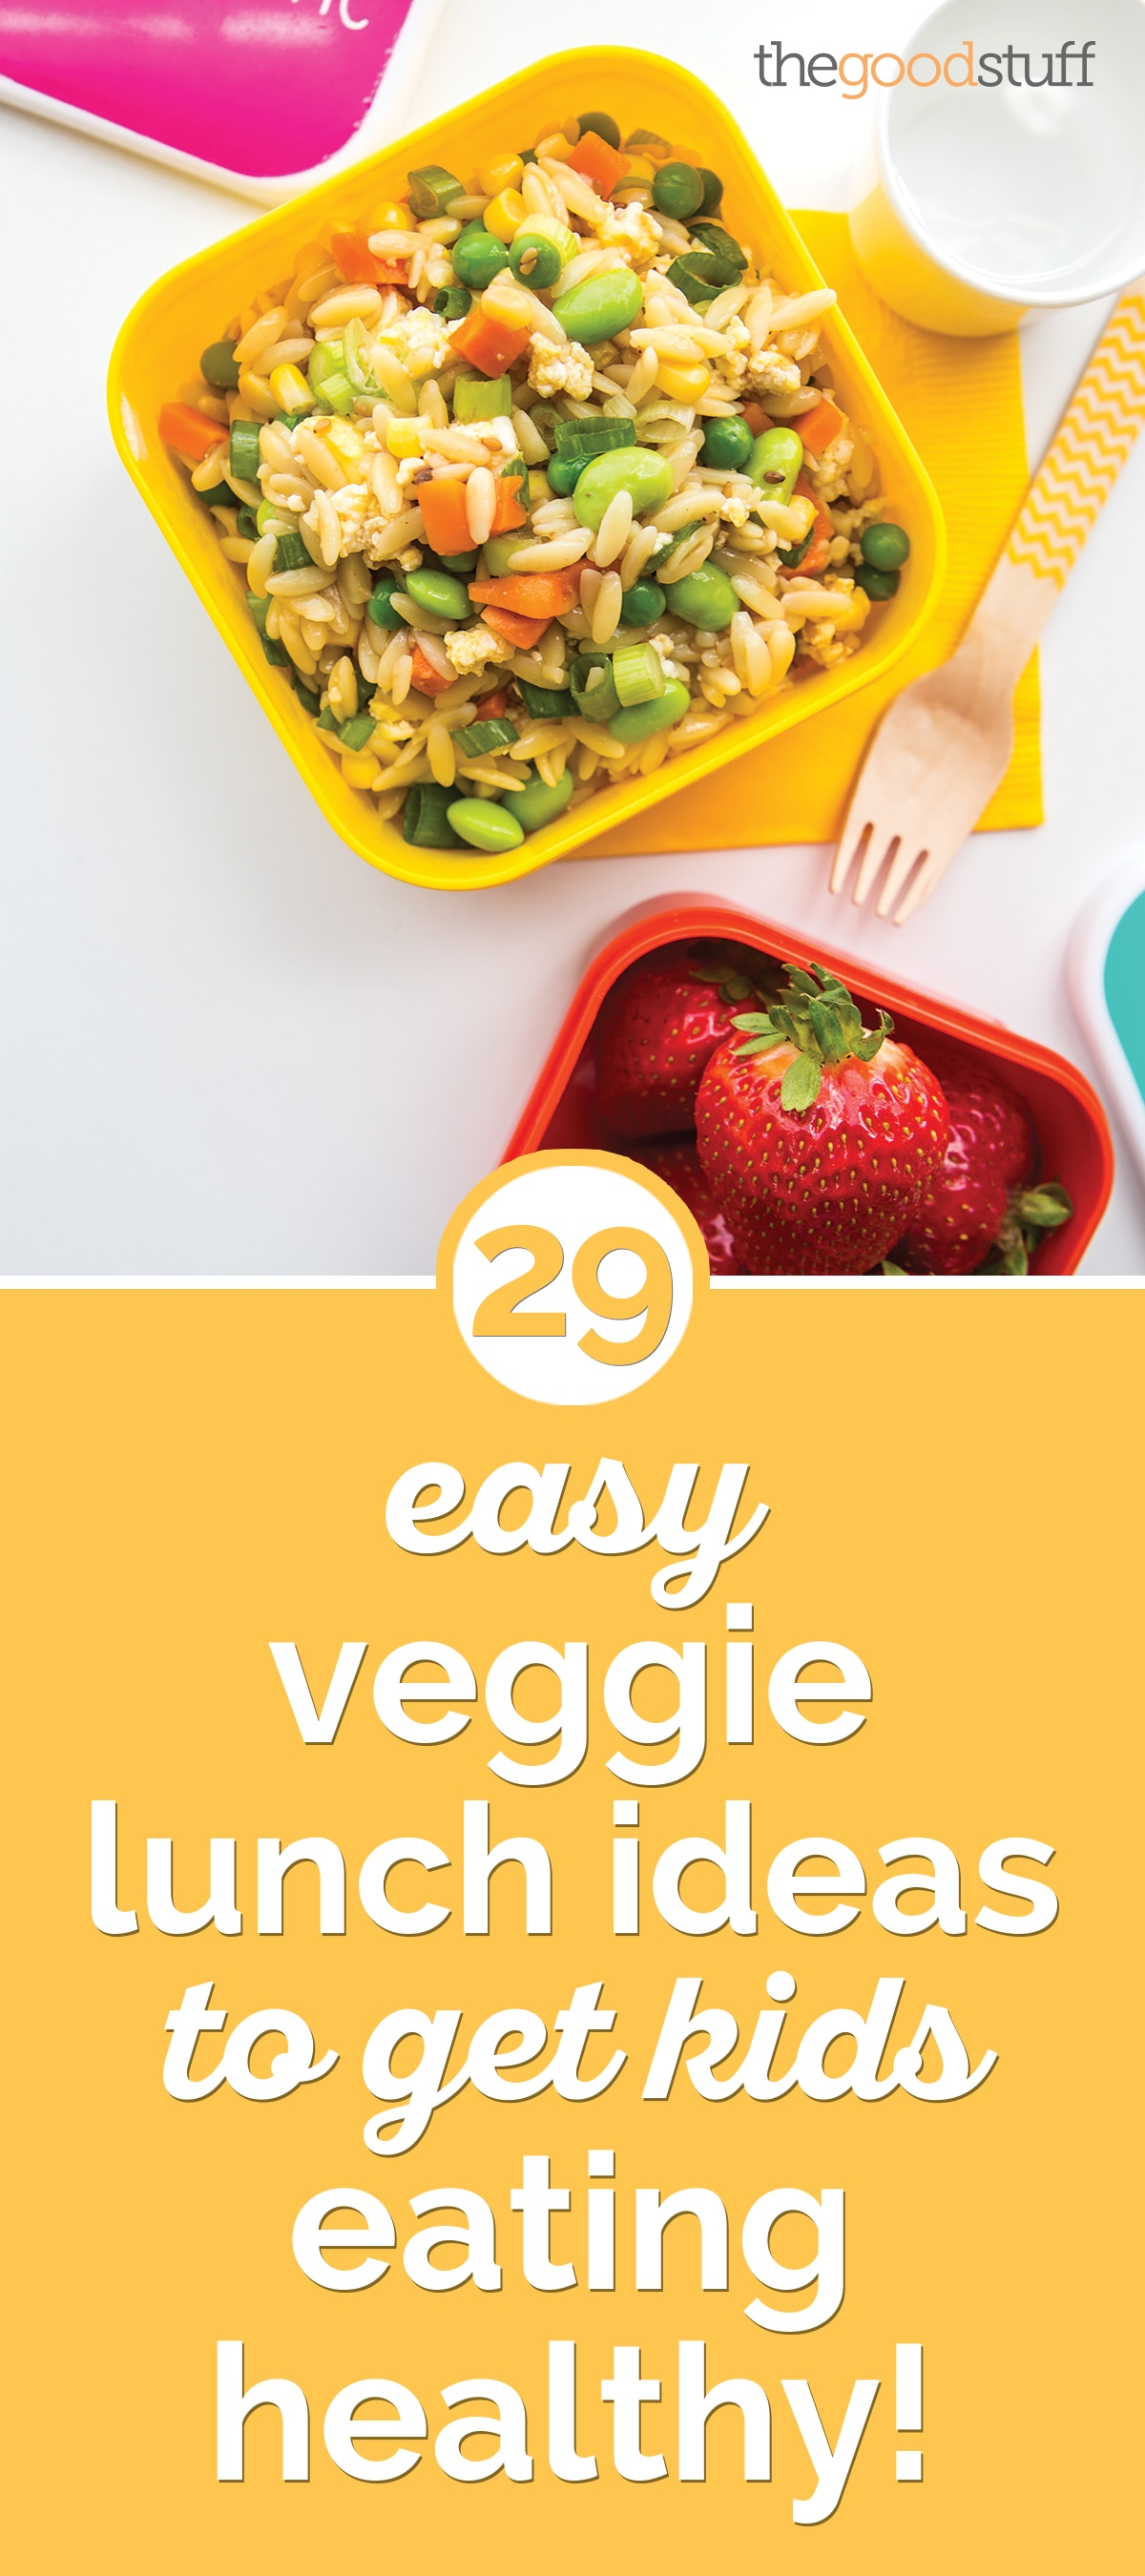 29 Easy & Healthy Veggie Lunch Ideas for Kids | thegoodstuff